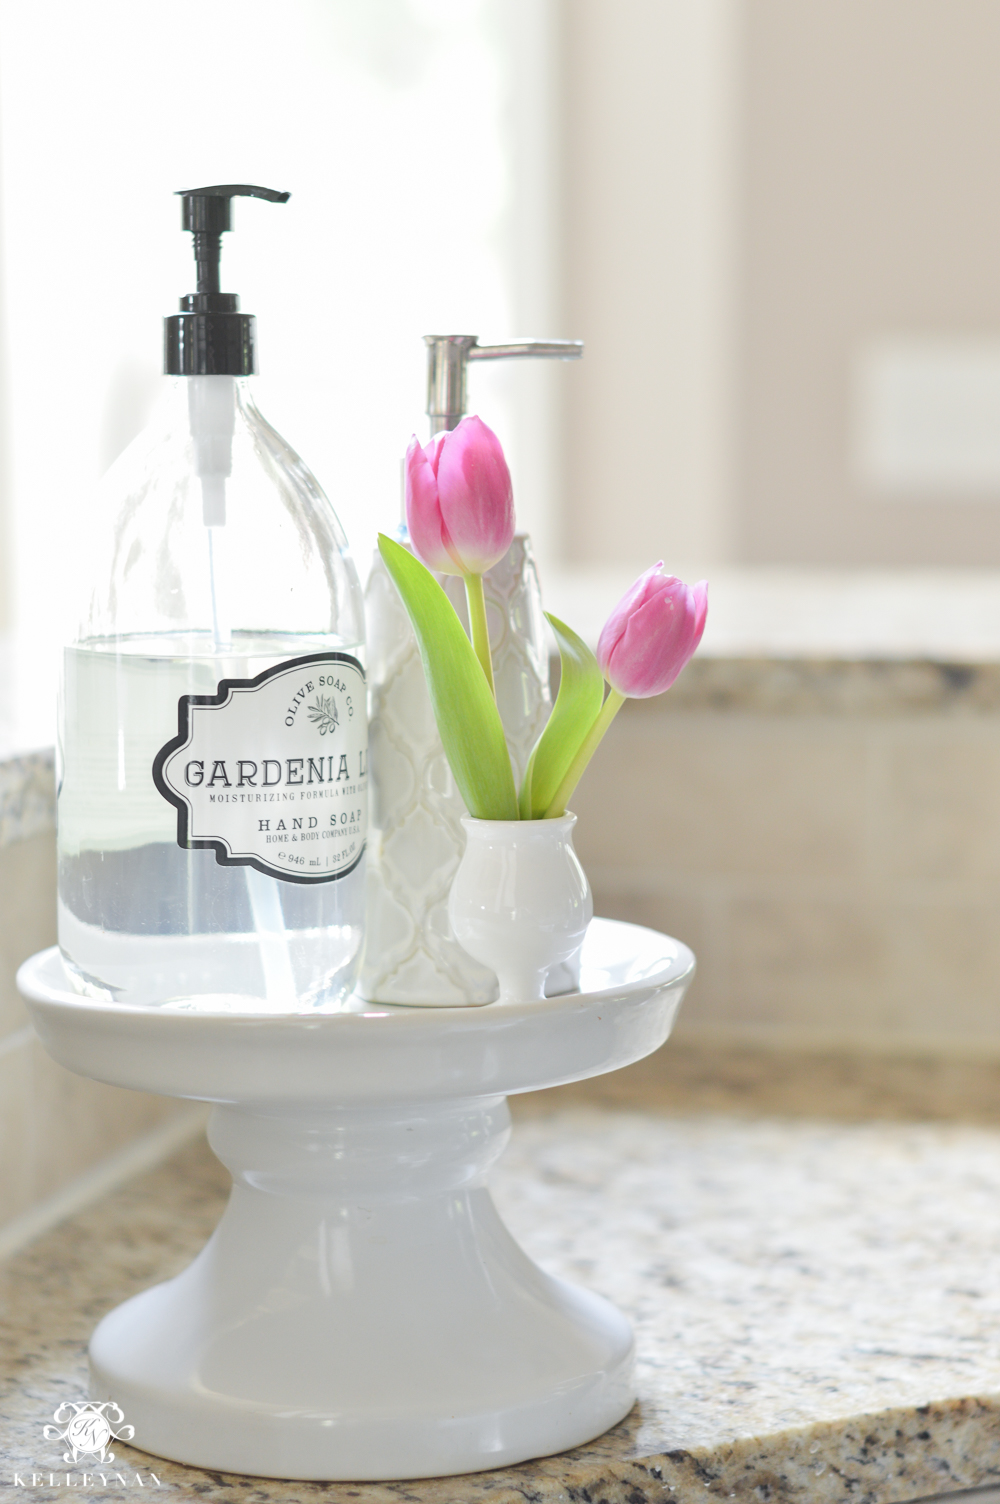 Shades of Summer Home Tour with Neutrals and Naturals-beverage tub stand for soap holder next to sink with bud vase of tulips